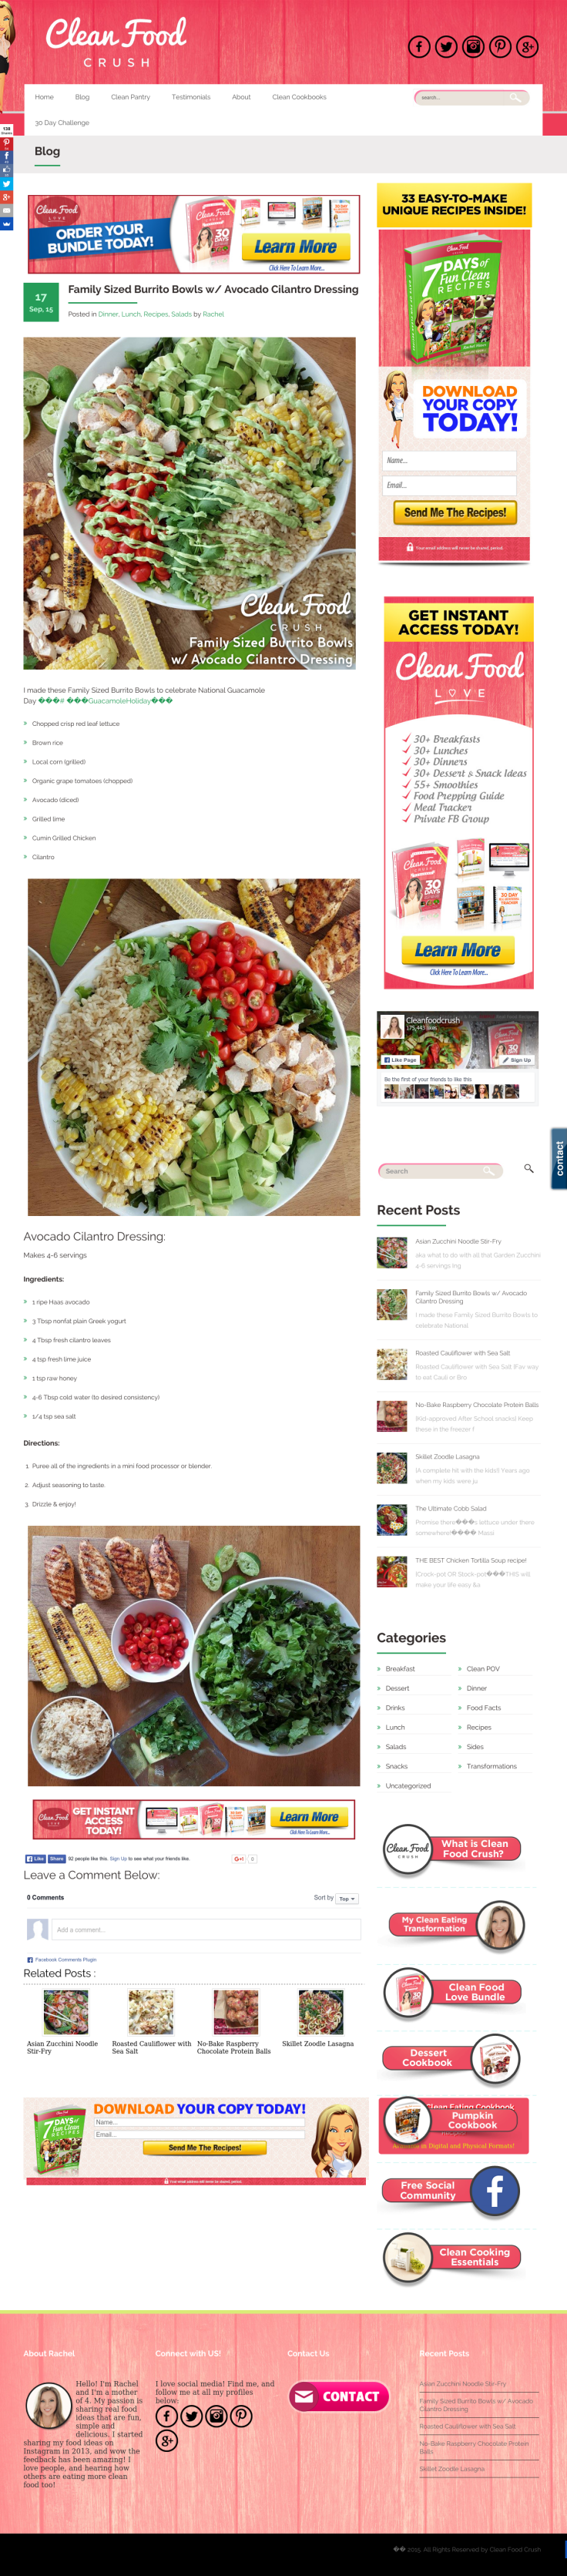 Website'http%3A%2F%2Fcleanfoodcrush.com%2Fburrito-bowls-avo-cilantro-dressing%2F' snapped on Page2images!